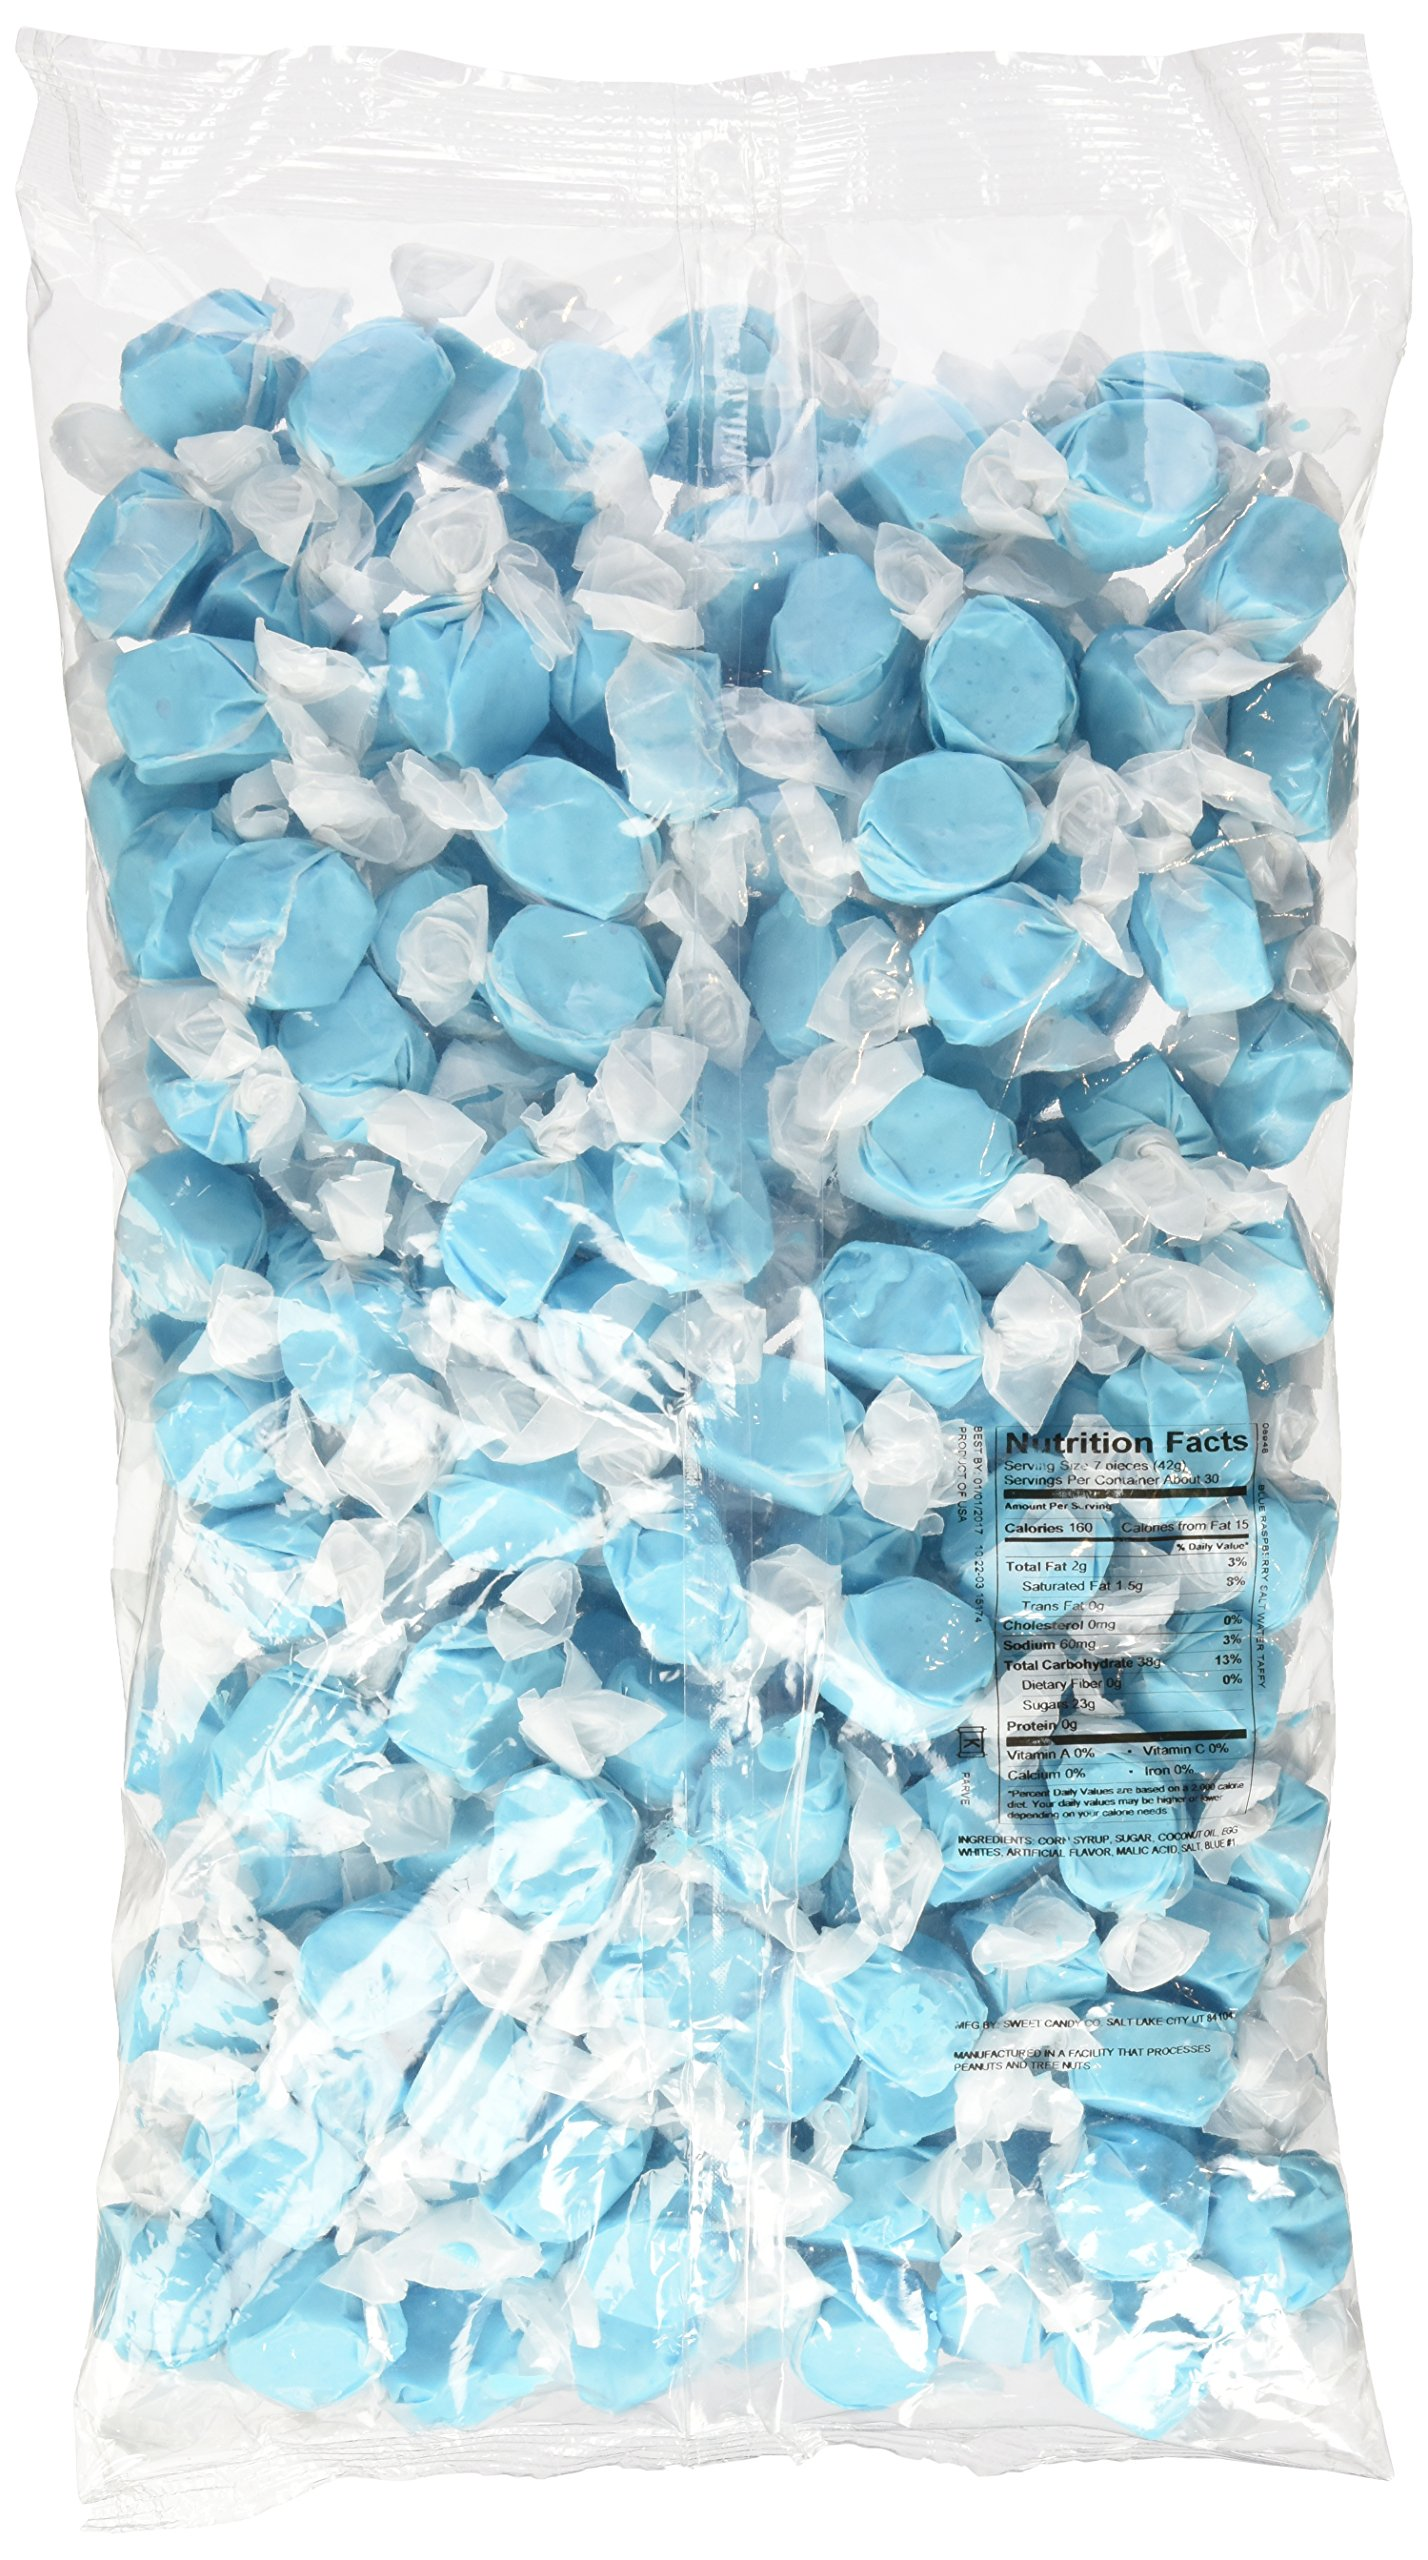 Blue Raspberry Saltwater Taffy 3 Pound Bag by Sweets